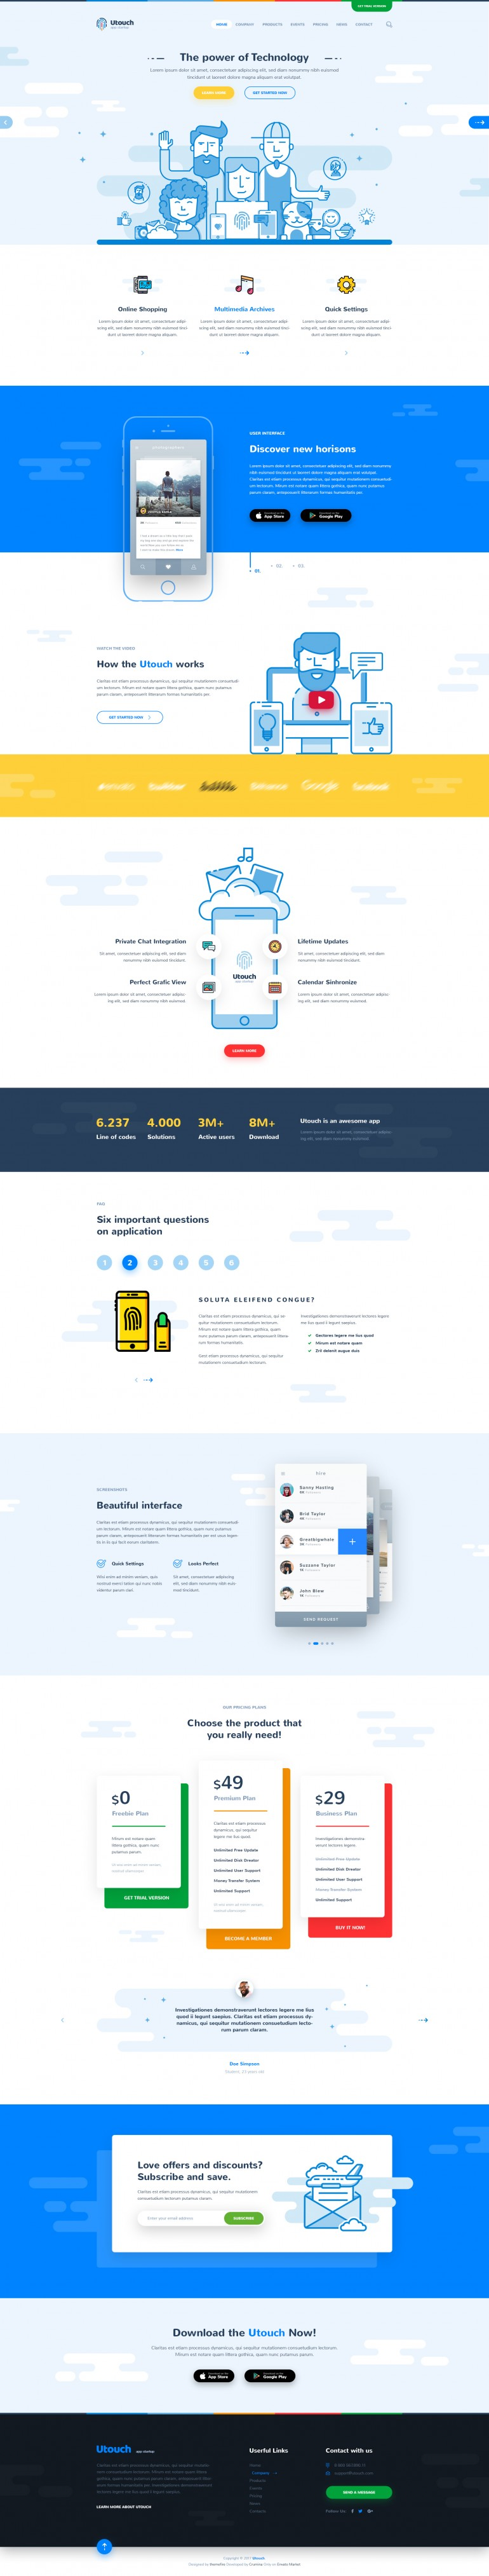 Utouch – App Startup Business and Digital Technology on Inspirationde